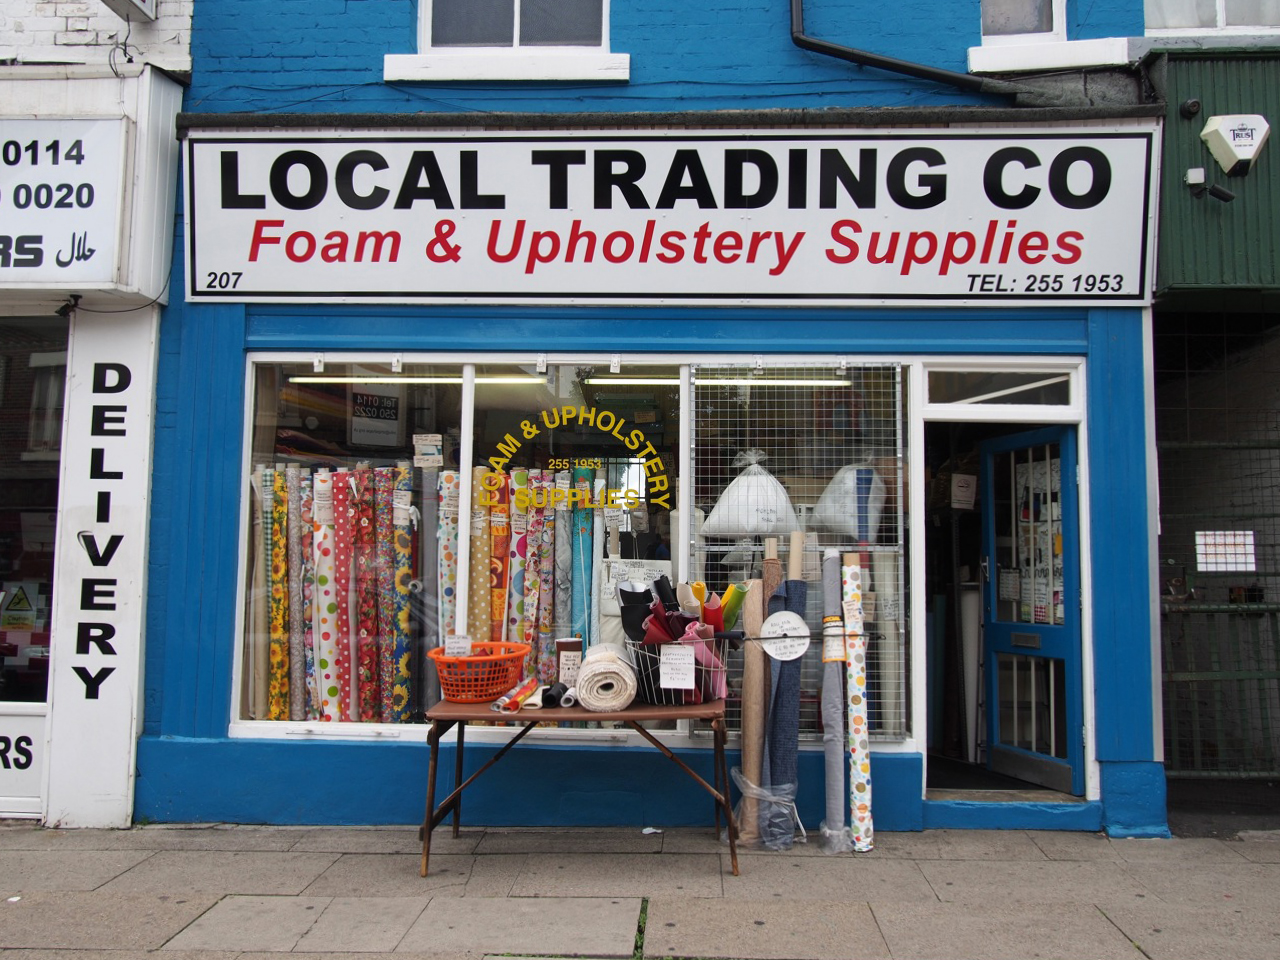 Upholstery Foam Yorkshire Local Trading Co Foam And Upholstery Supplies 2013 Shop Fronts